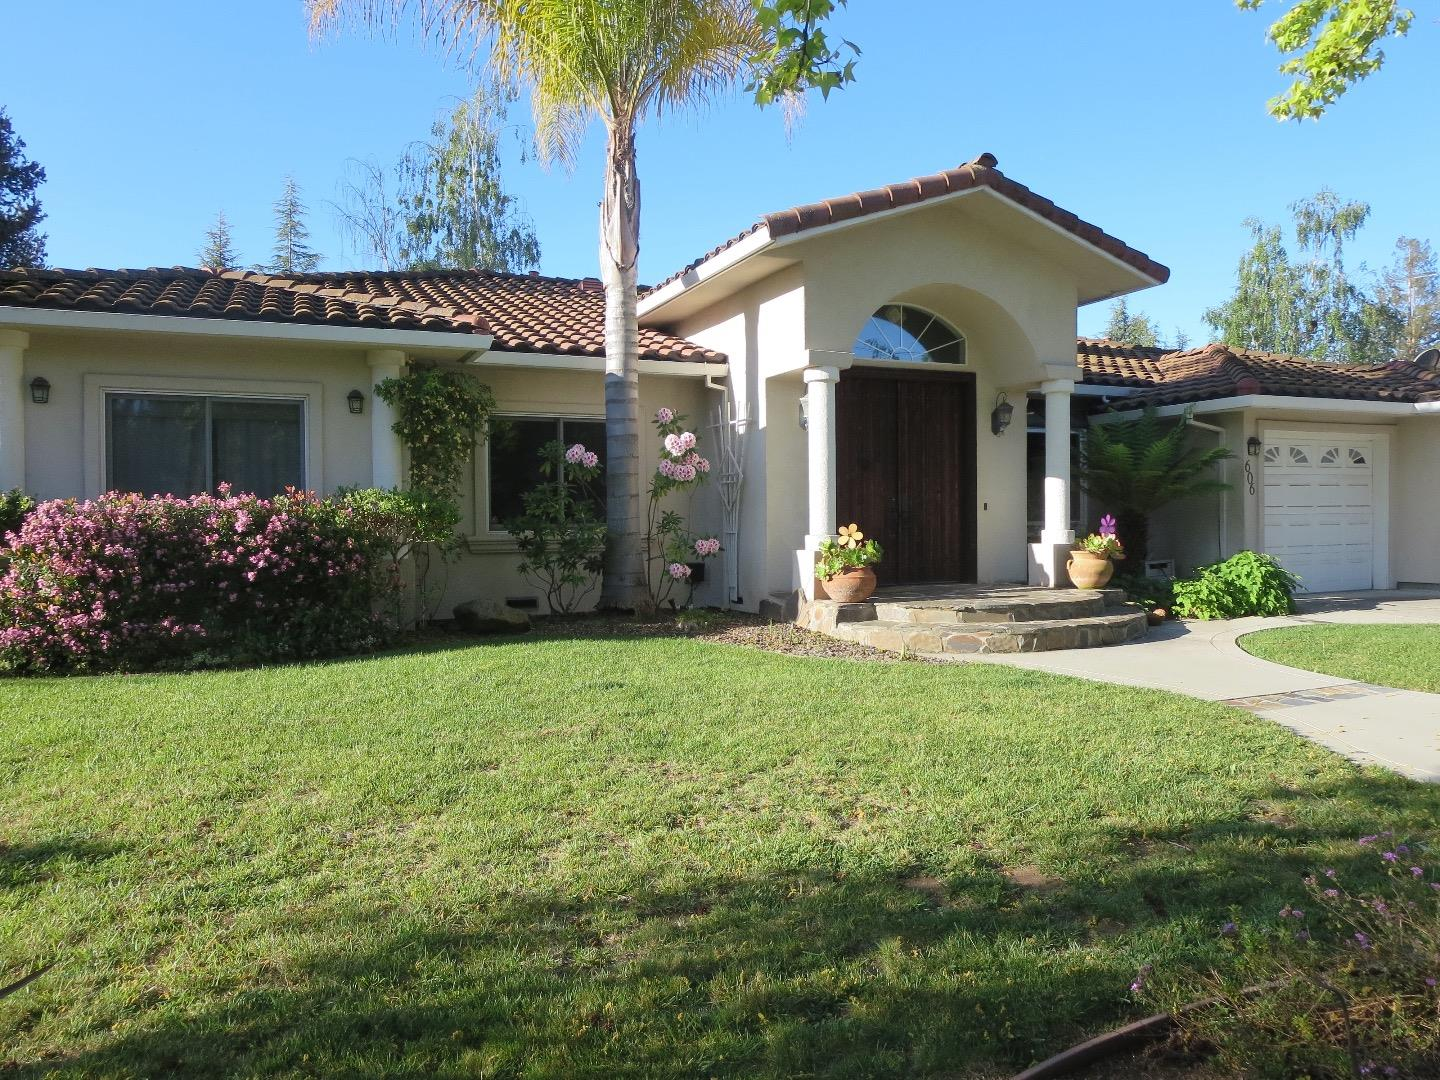 Single Family Home for Rent at 606 Benvenue Los Altos, California 94024 United States